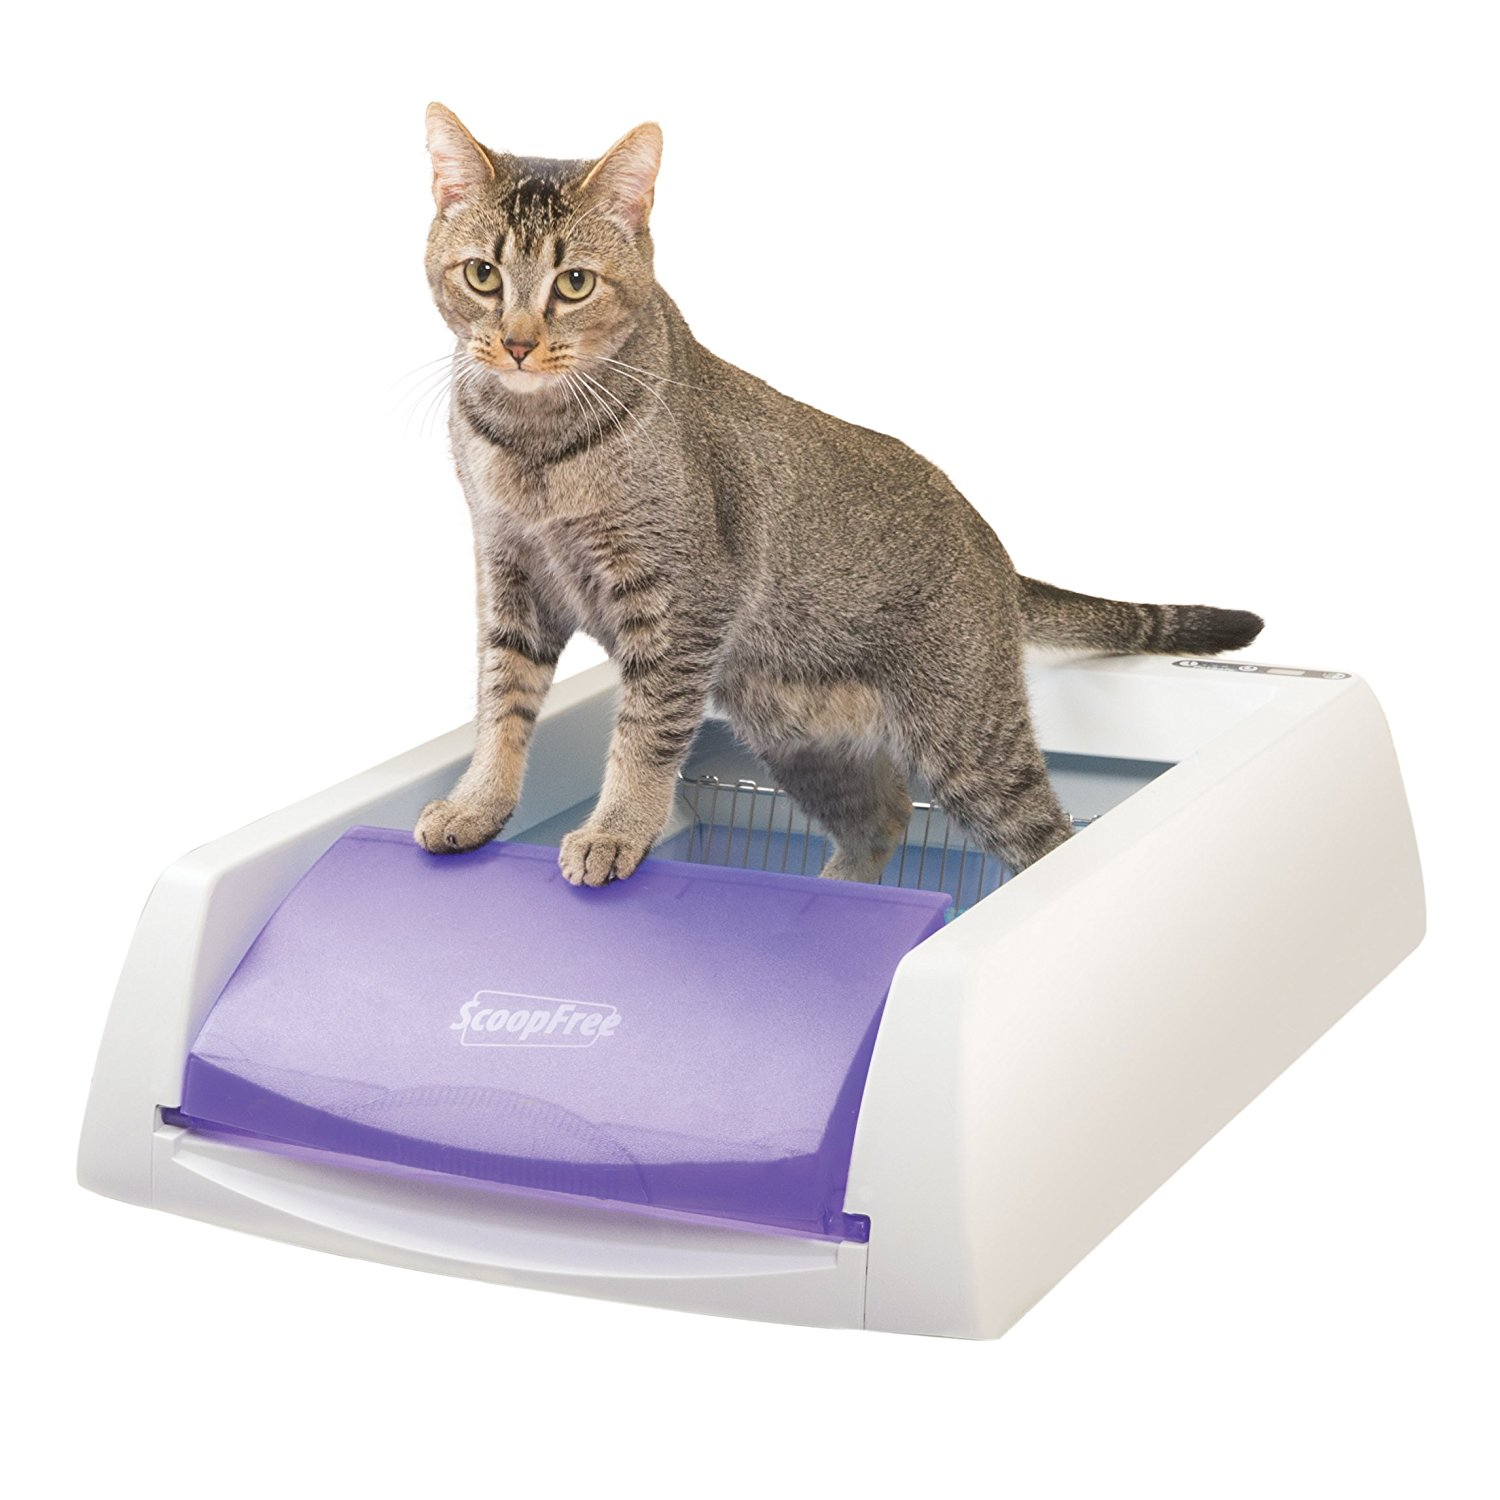 Gifts for cat lovers - self-cleaning litter box